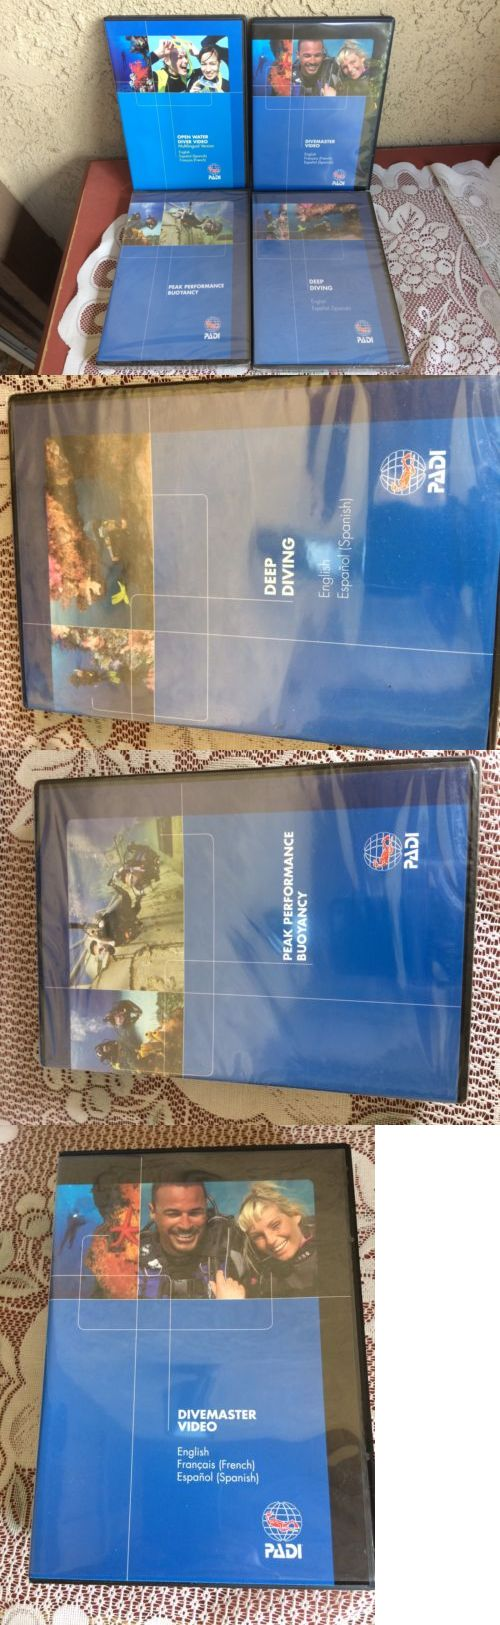 Books and Video 73993: Padi Set 4 Dvds Divemaster Open Water Diver Buoyancy Deep Diving -> BUY IT NOW ONLY: $79.95 on eBay!